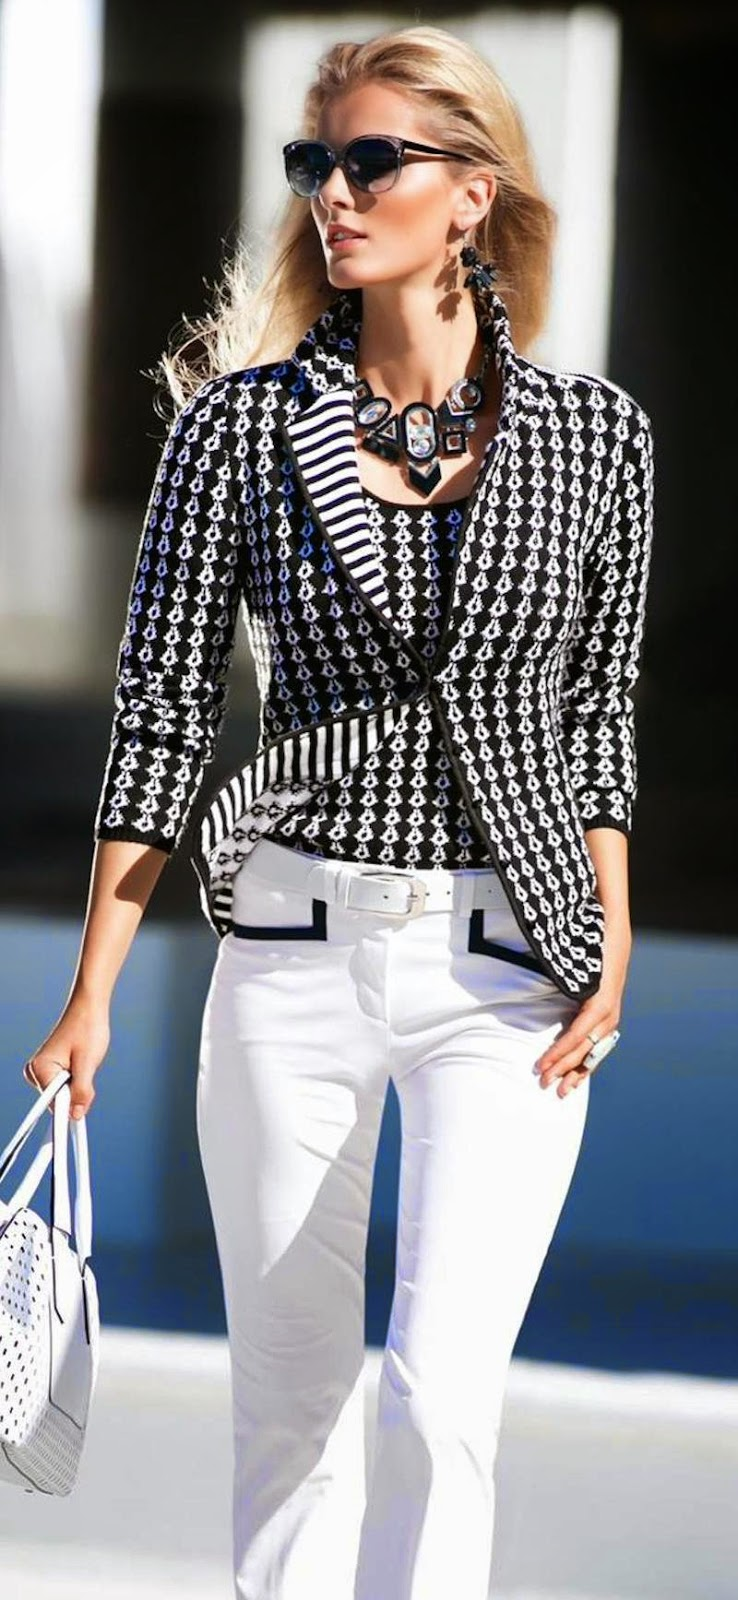 MADELEINE KNIT BLAZER in Black and White